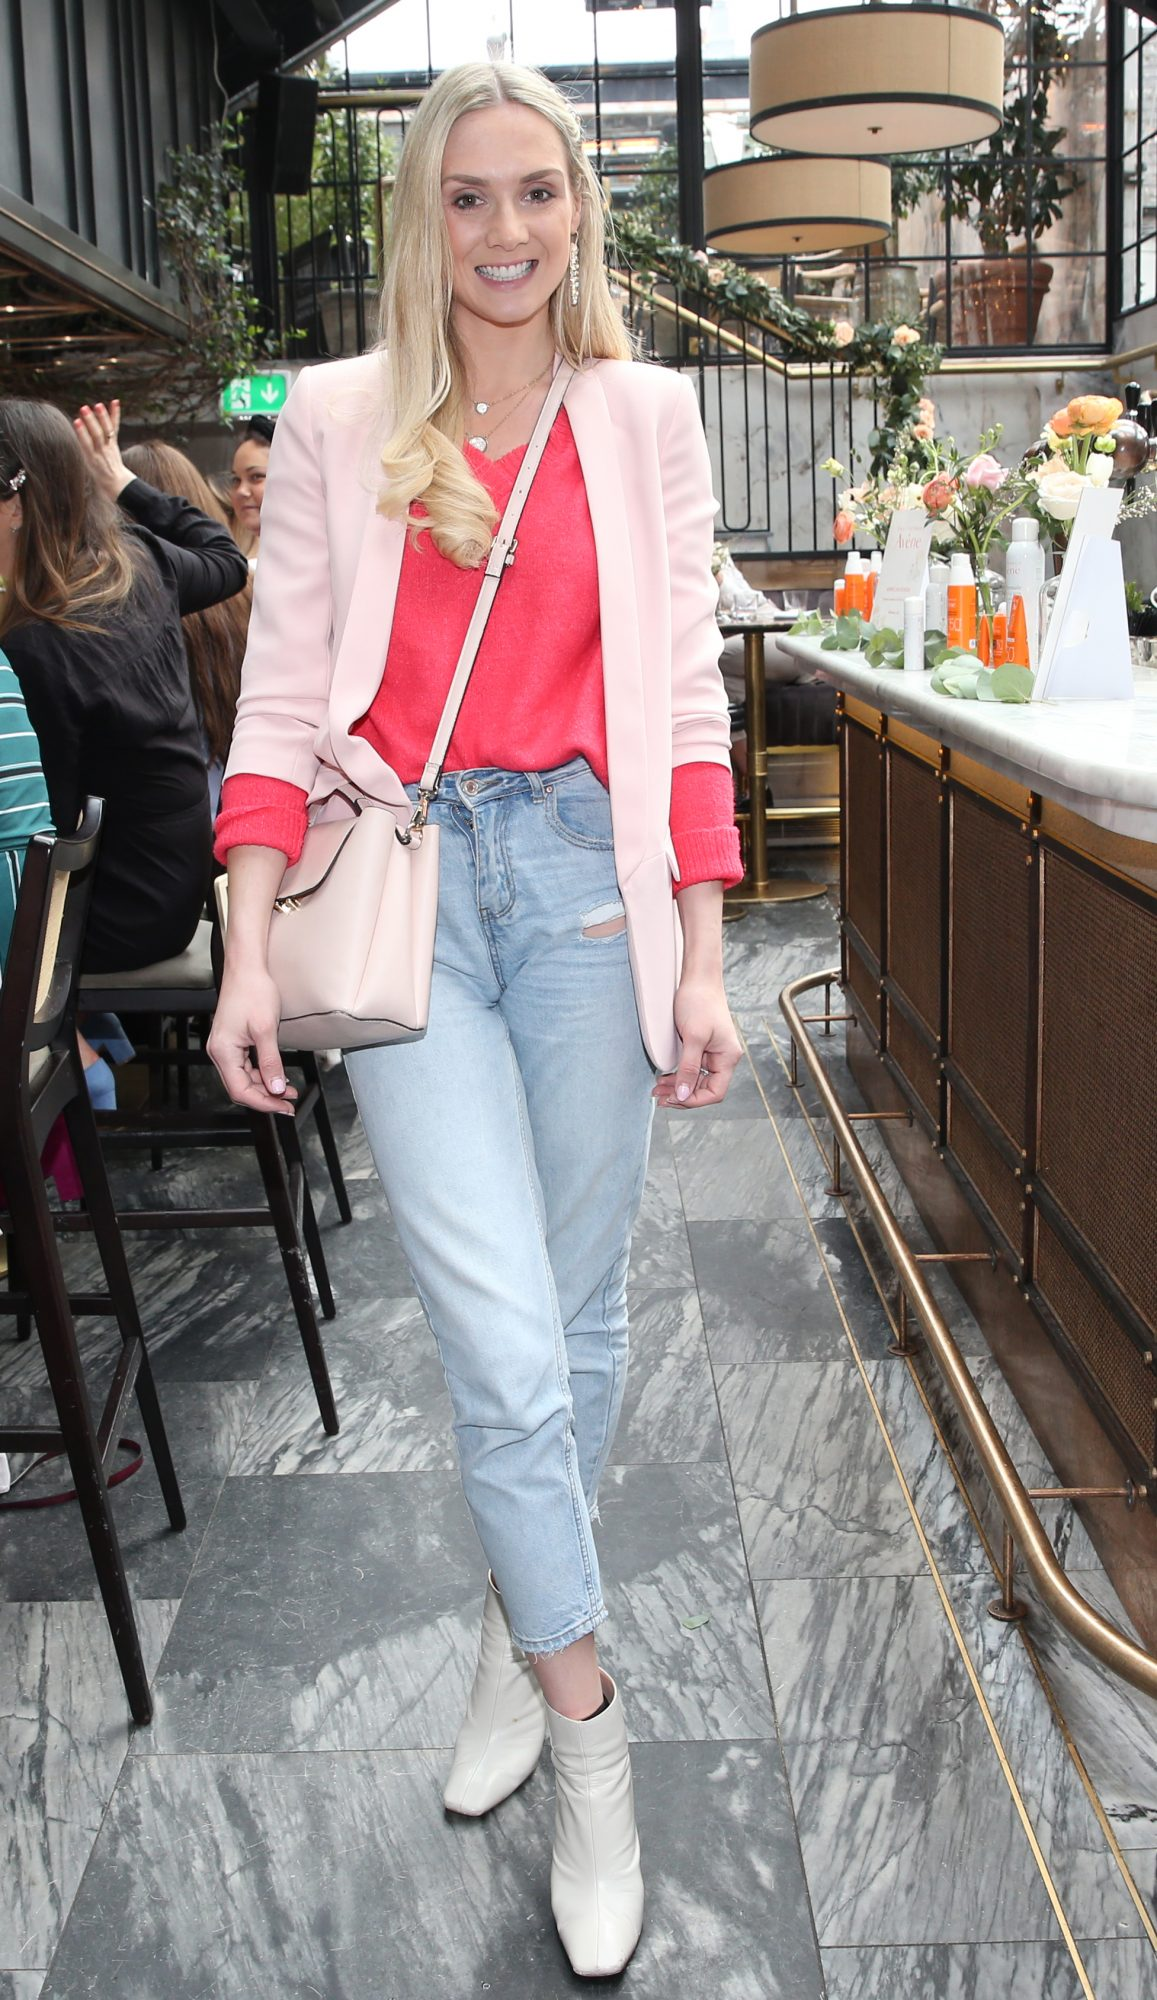 Pictured is Judy Gilroy at the launch of the new Avène Expert Suncare Range in The Grayson Dublin. The new range of suncare from the French brand is suitable for all skin types and includes a Sports Sun Cream, a City Shield BB Style High Protection Face Cream, two new SPF Body Sprays and a new Very High Protection Children's SPF. For more information visit www.avene.ie. Photo: Leon Farrell/Photocall Ireland.